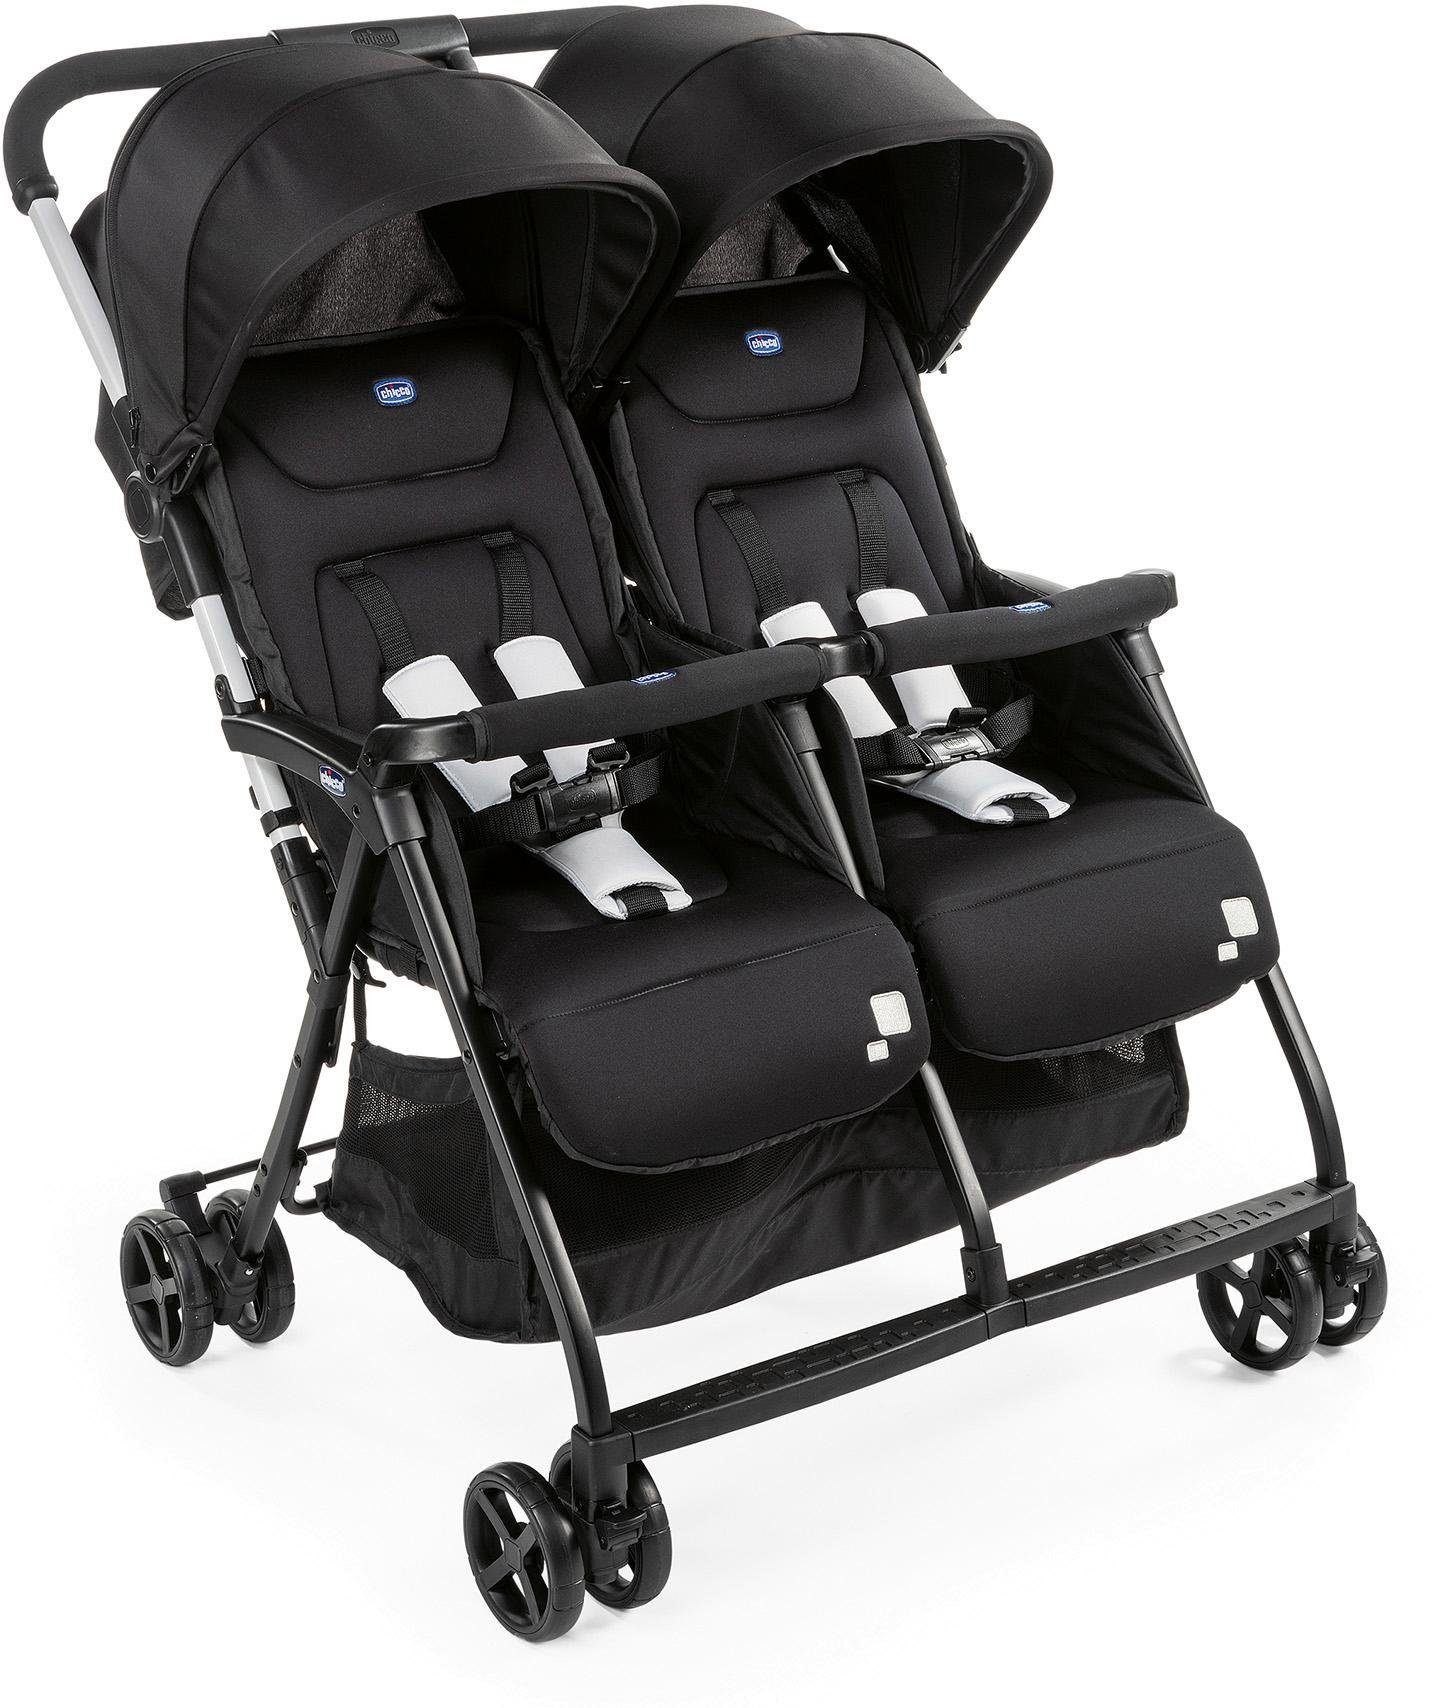 Chicco Zwillingsbuggy OHlalà Twin, Black Night, 15 kg, Zwillingskinderwagen; Kinderwagen für Zwillinge; Buggy Zwillingswagen schwarz Kinder Zwillingsbuggys Buggys Buggies